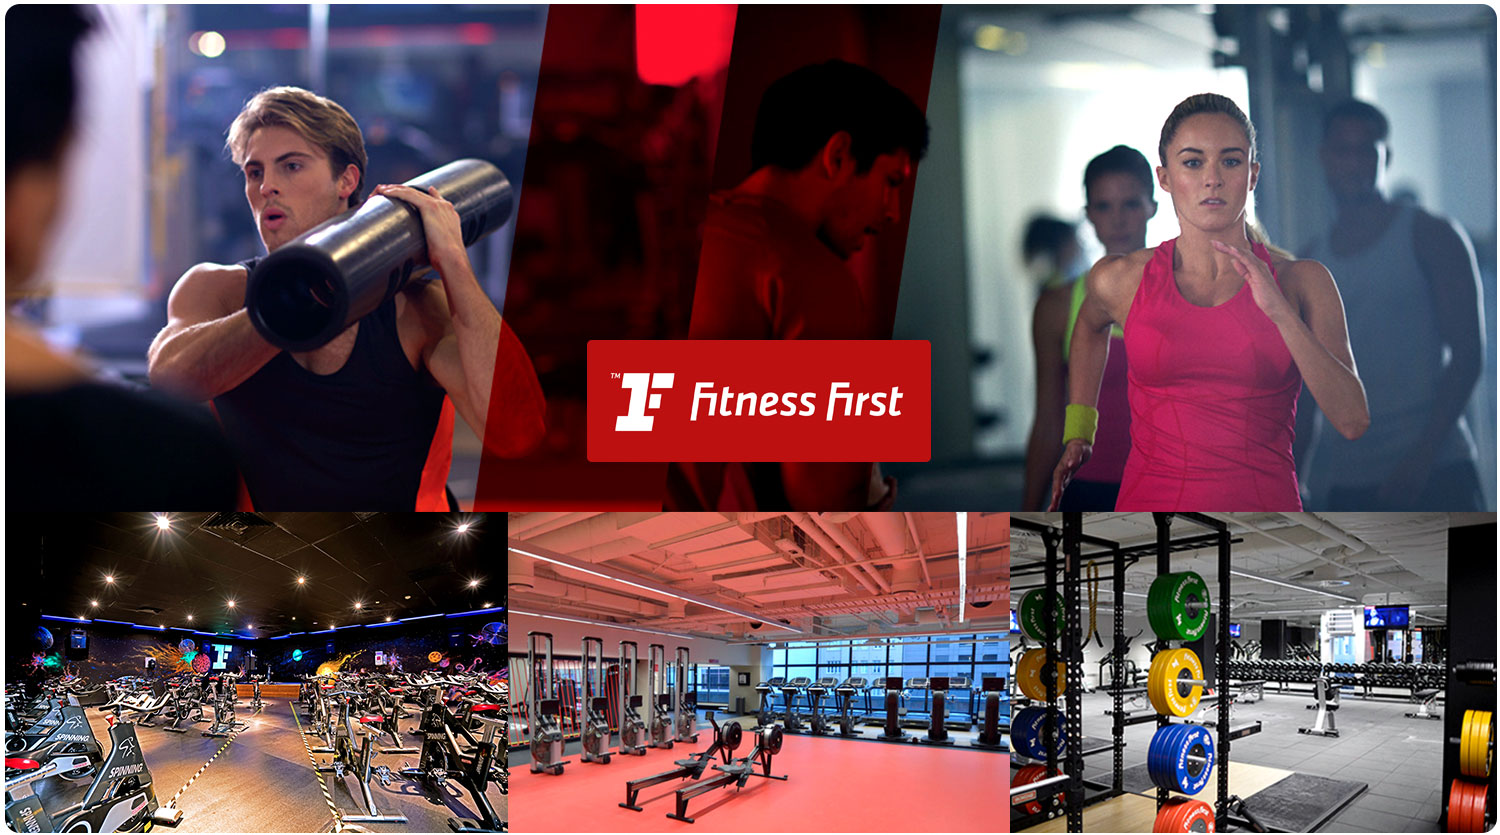 Start your Fitness Journey with Fitness First with only $14.95 for 14 days at Fitness First Ryde NSW. Experience our first class gym and freestyle classes inc. Zumba, Pilates, Yoga, HIIT, Les Mills and more. Take the first step with Fitness First Ryde NSW.